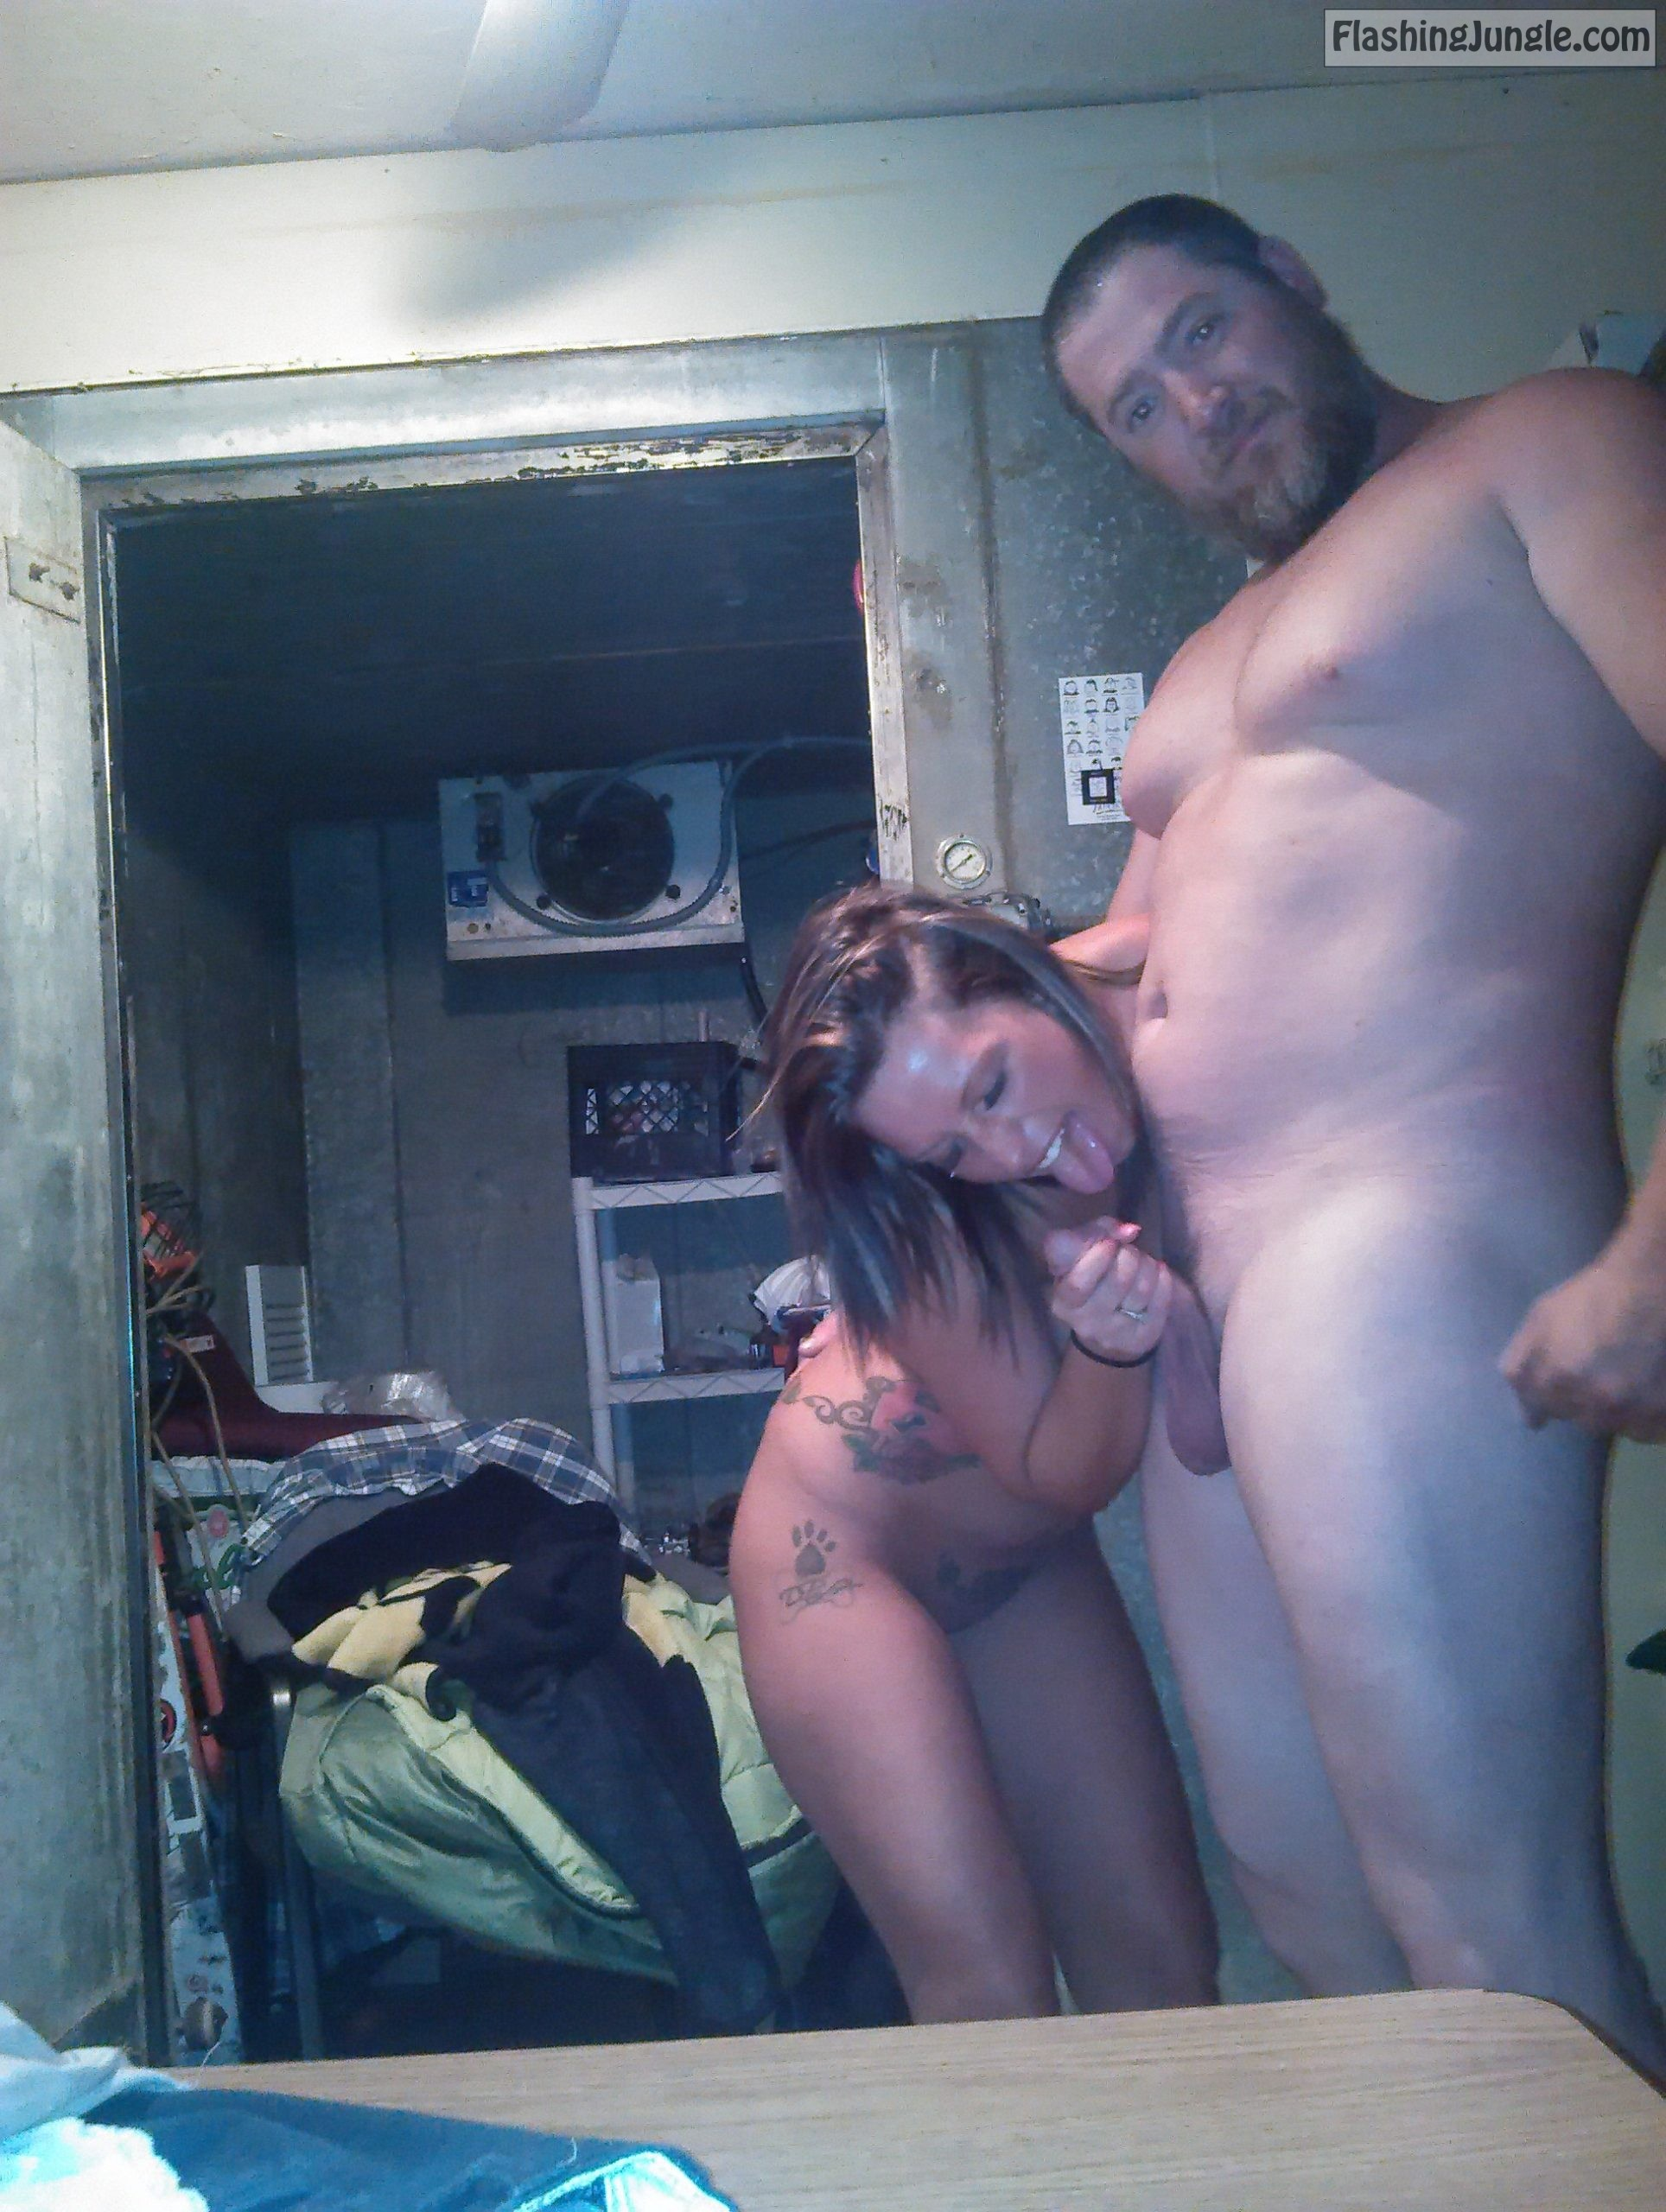 Real Nudity Bitch Flashing Pics